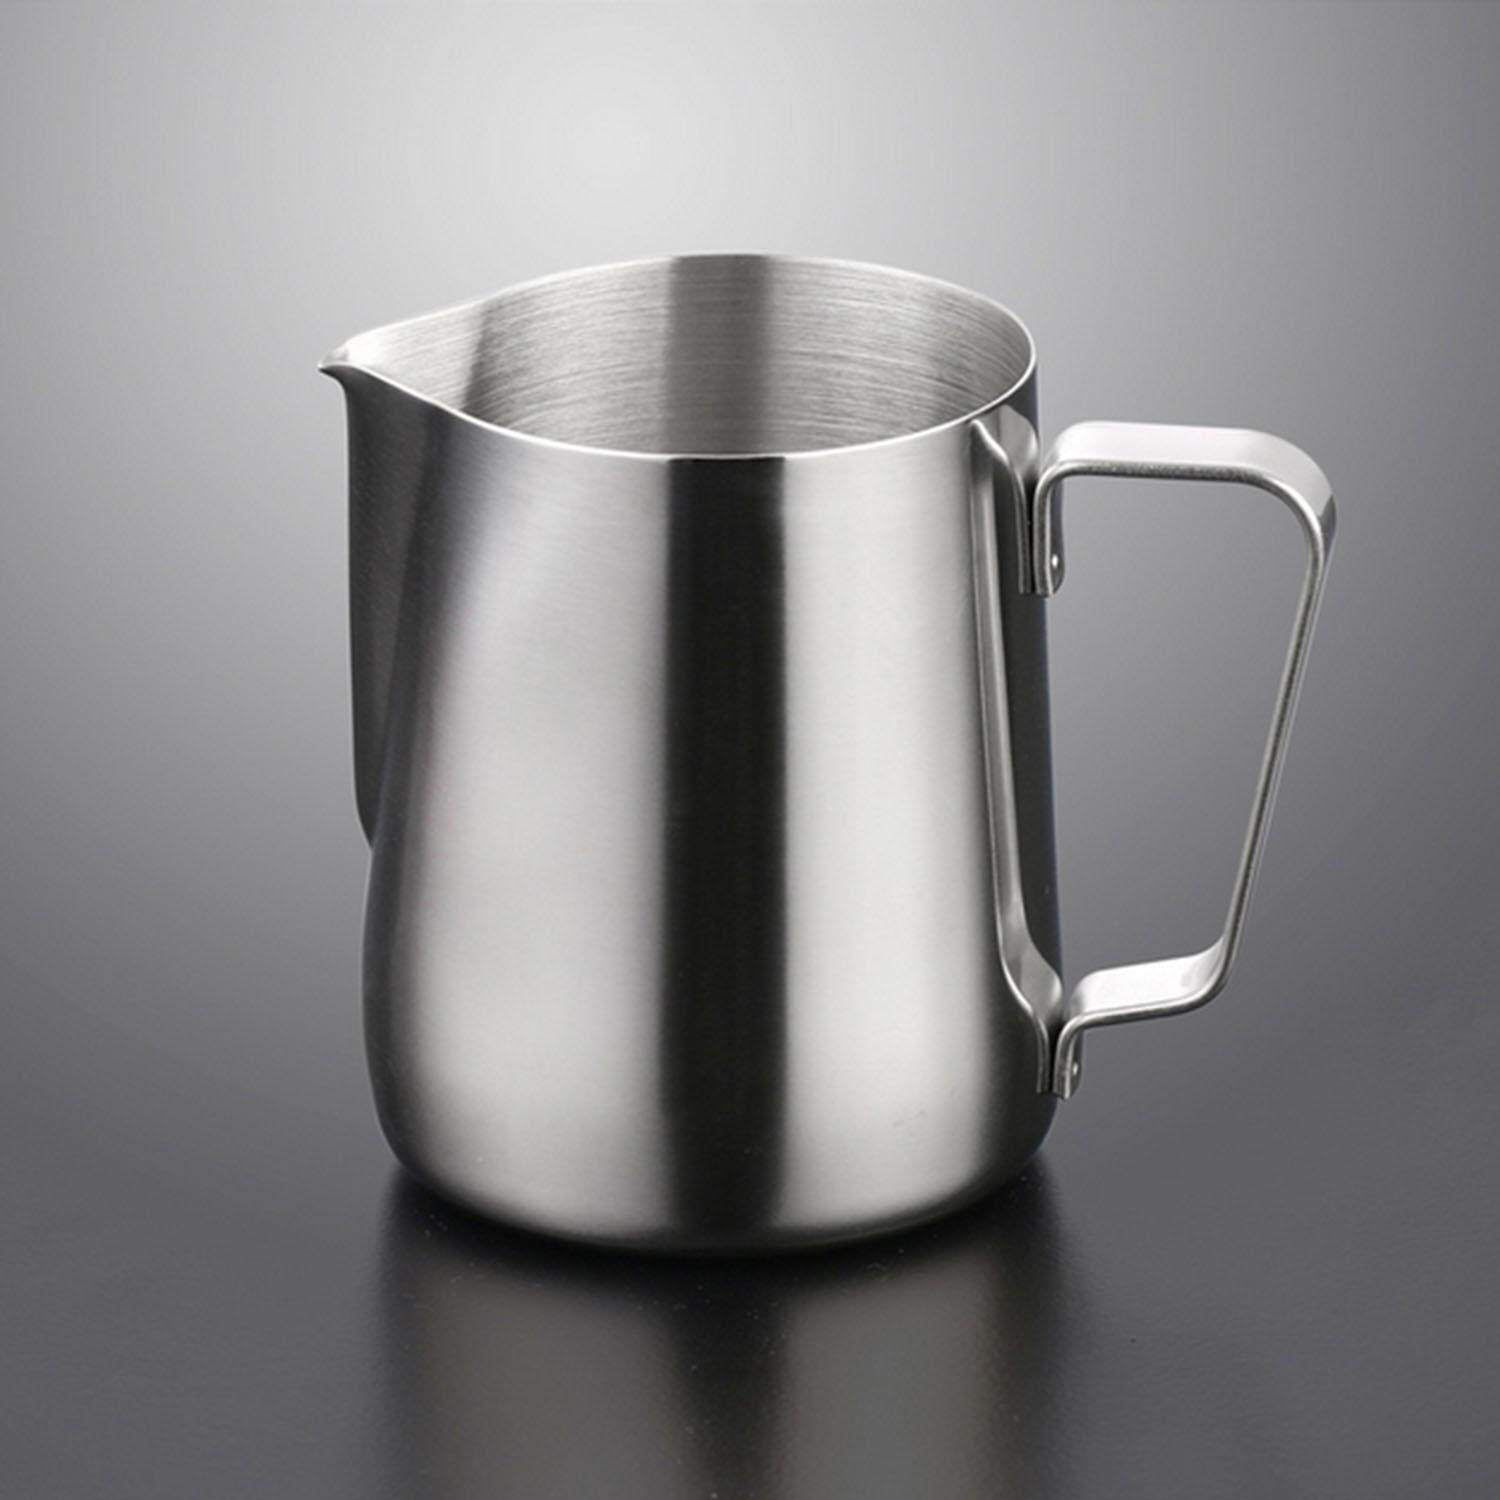 Hình ảnh 1000ml Stainless Steel Coffee Latte Milk Frothing Cup Pitcher Jug For Espresso Coffee Milk Frothers Latte Art - intl